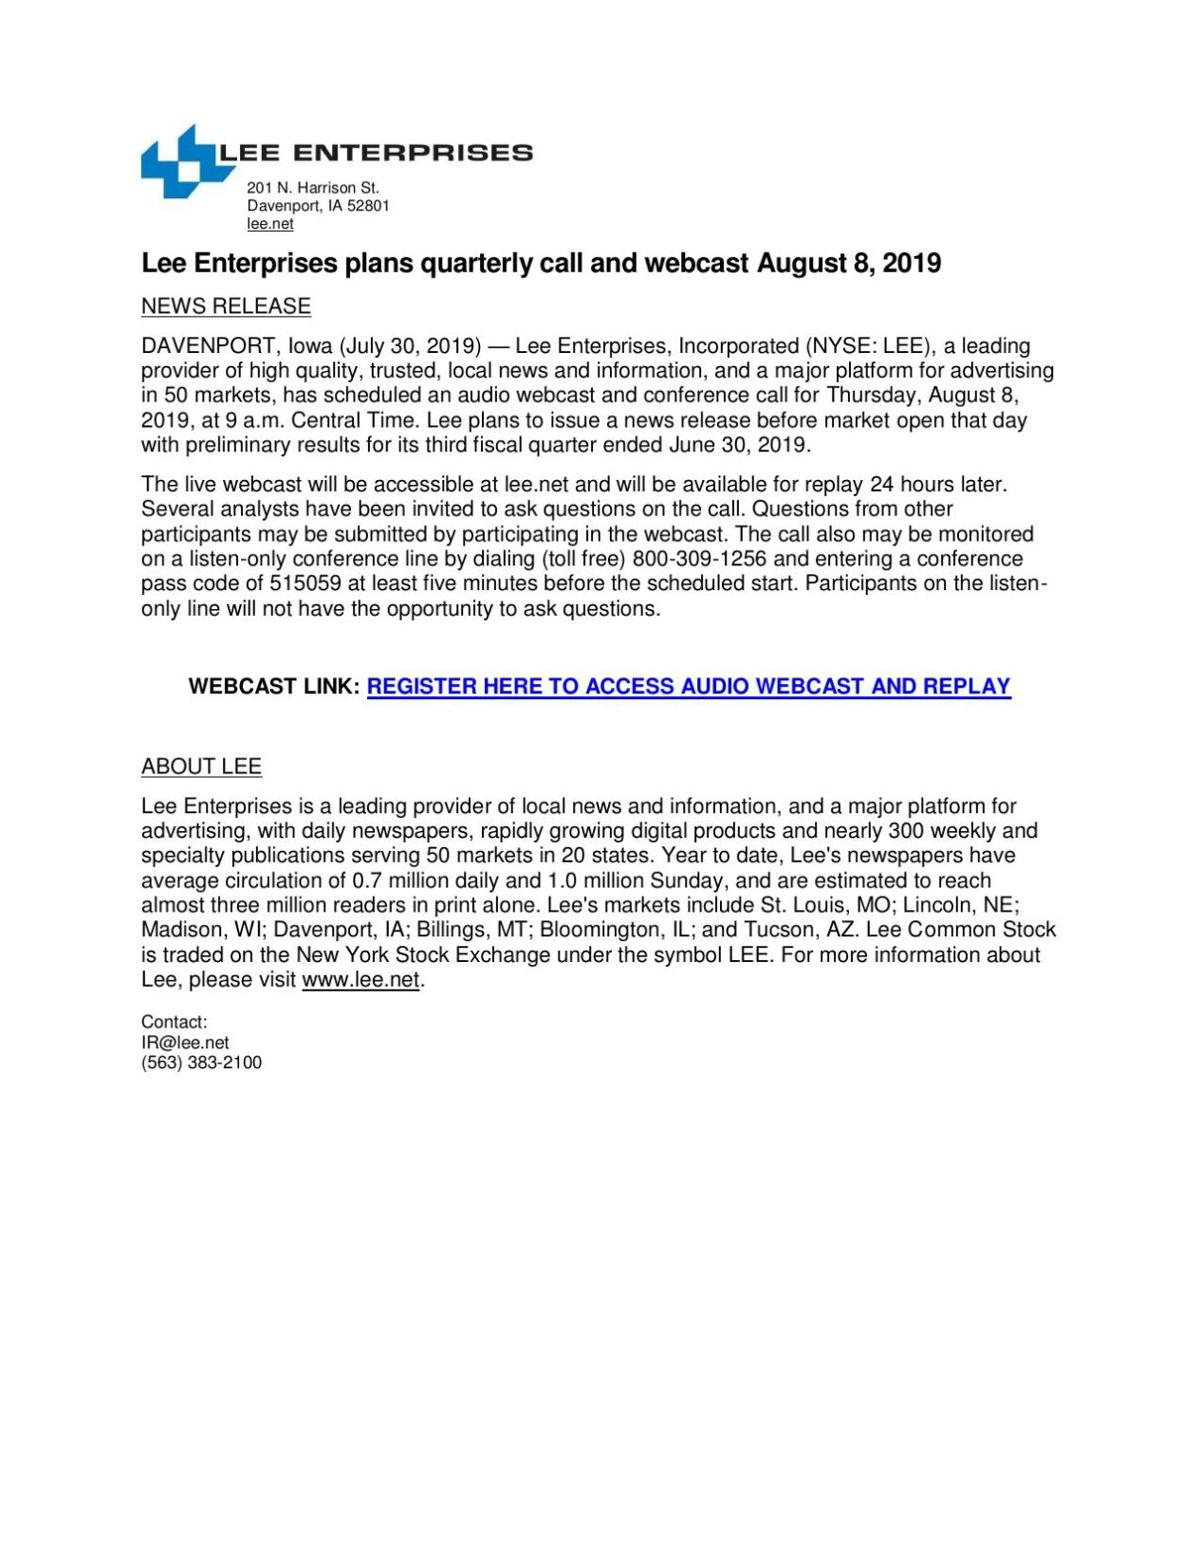 Lee Enterprises plans quarterly call and webcast August 8, 2019